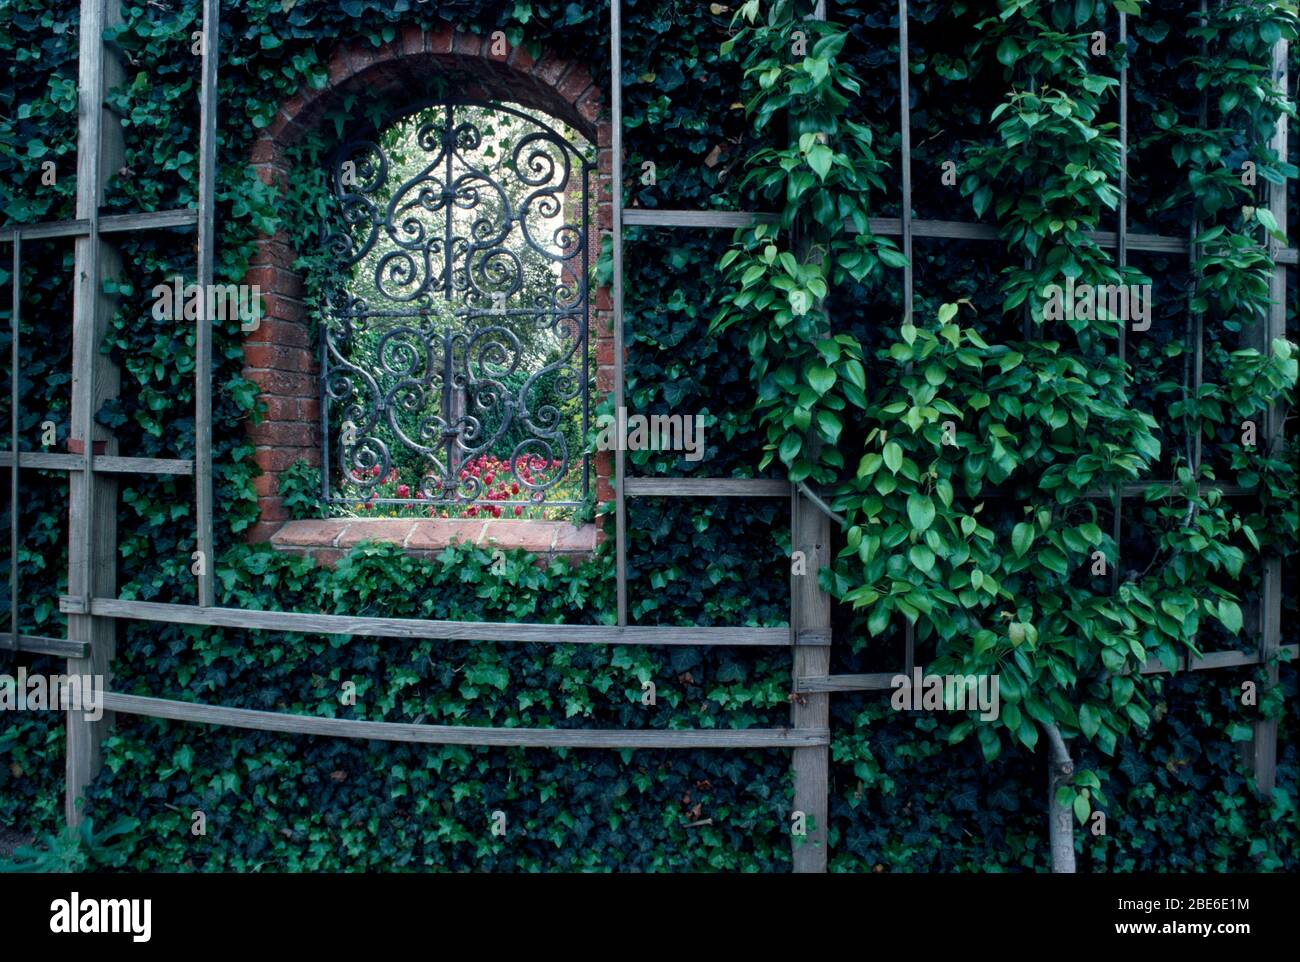 Trellis Covered With Ivy High Resolution Stock Photography and ...